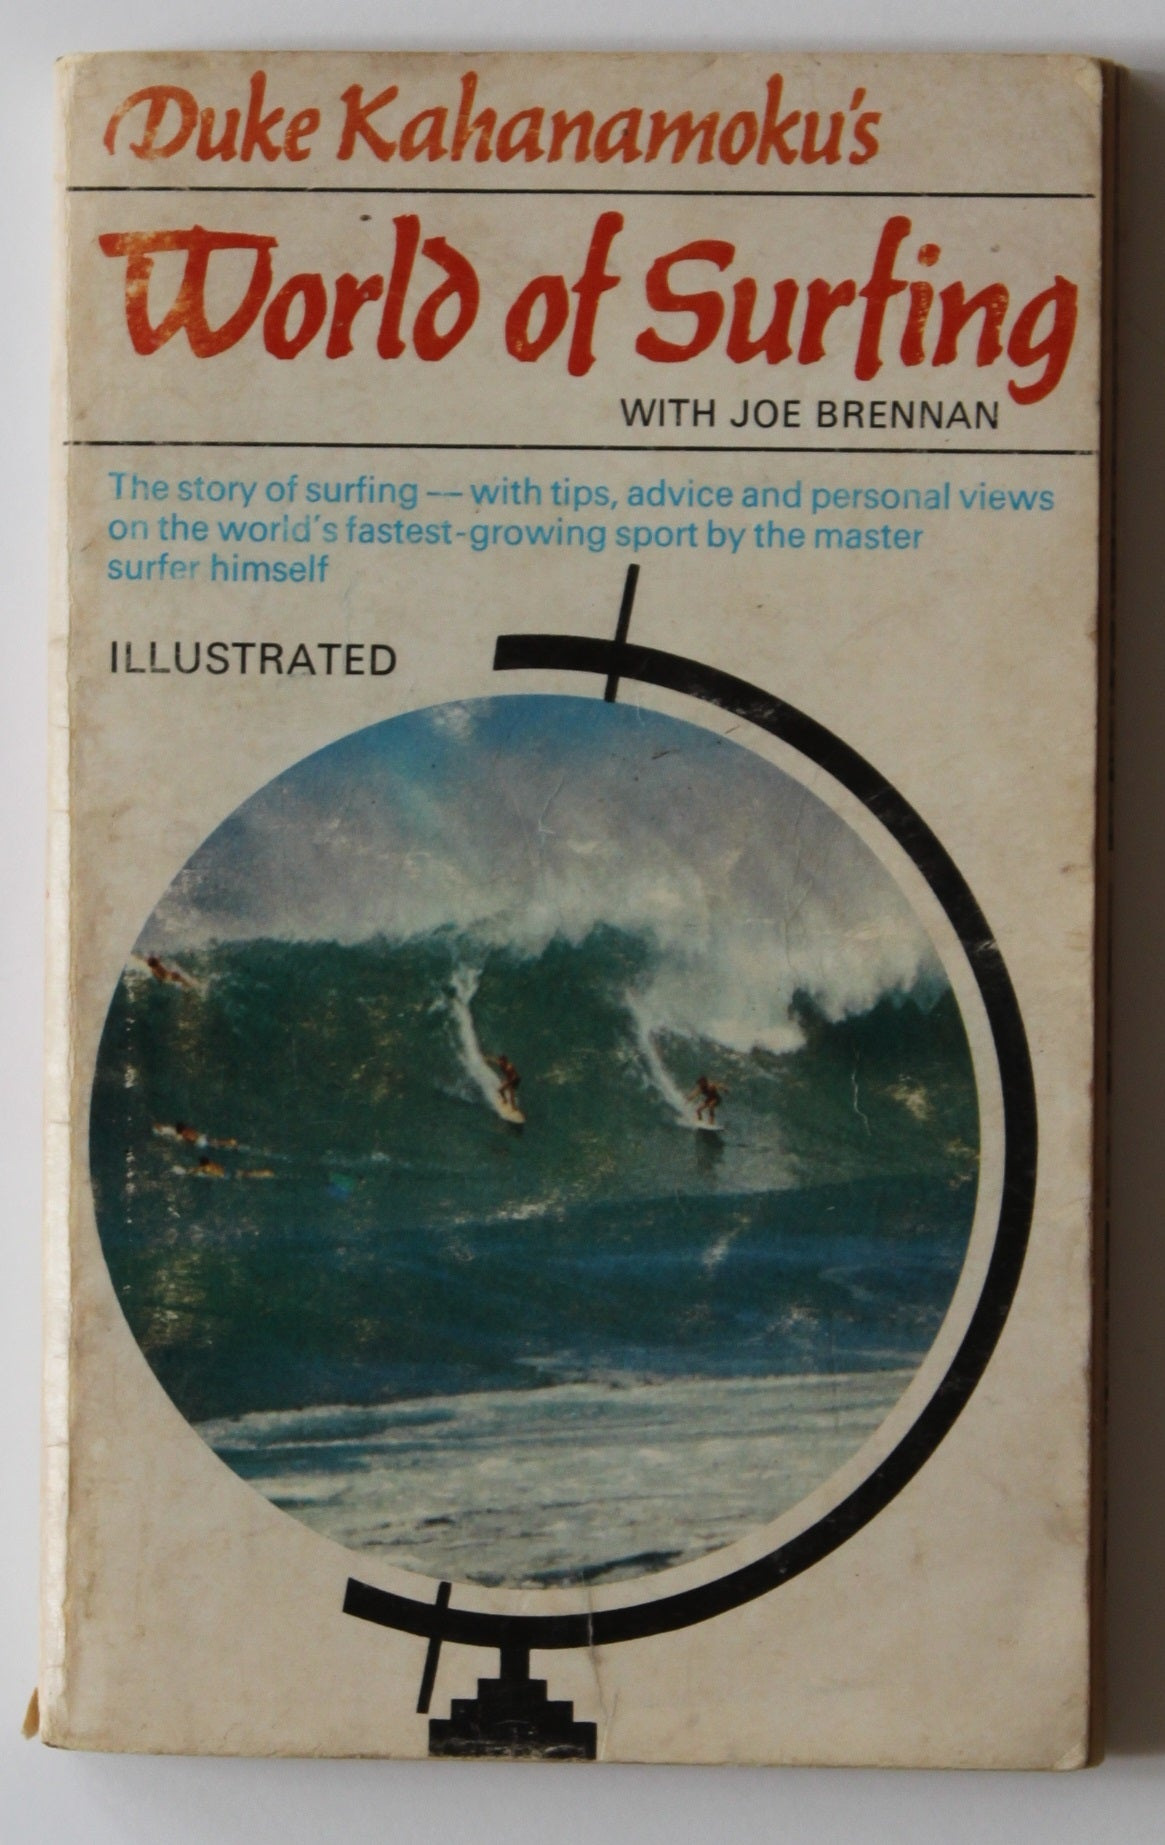 World of Surfing by Duke Kahanamoku.